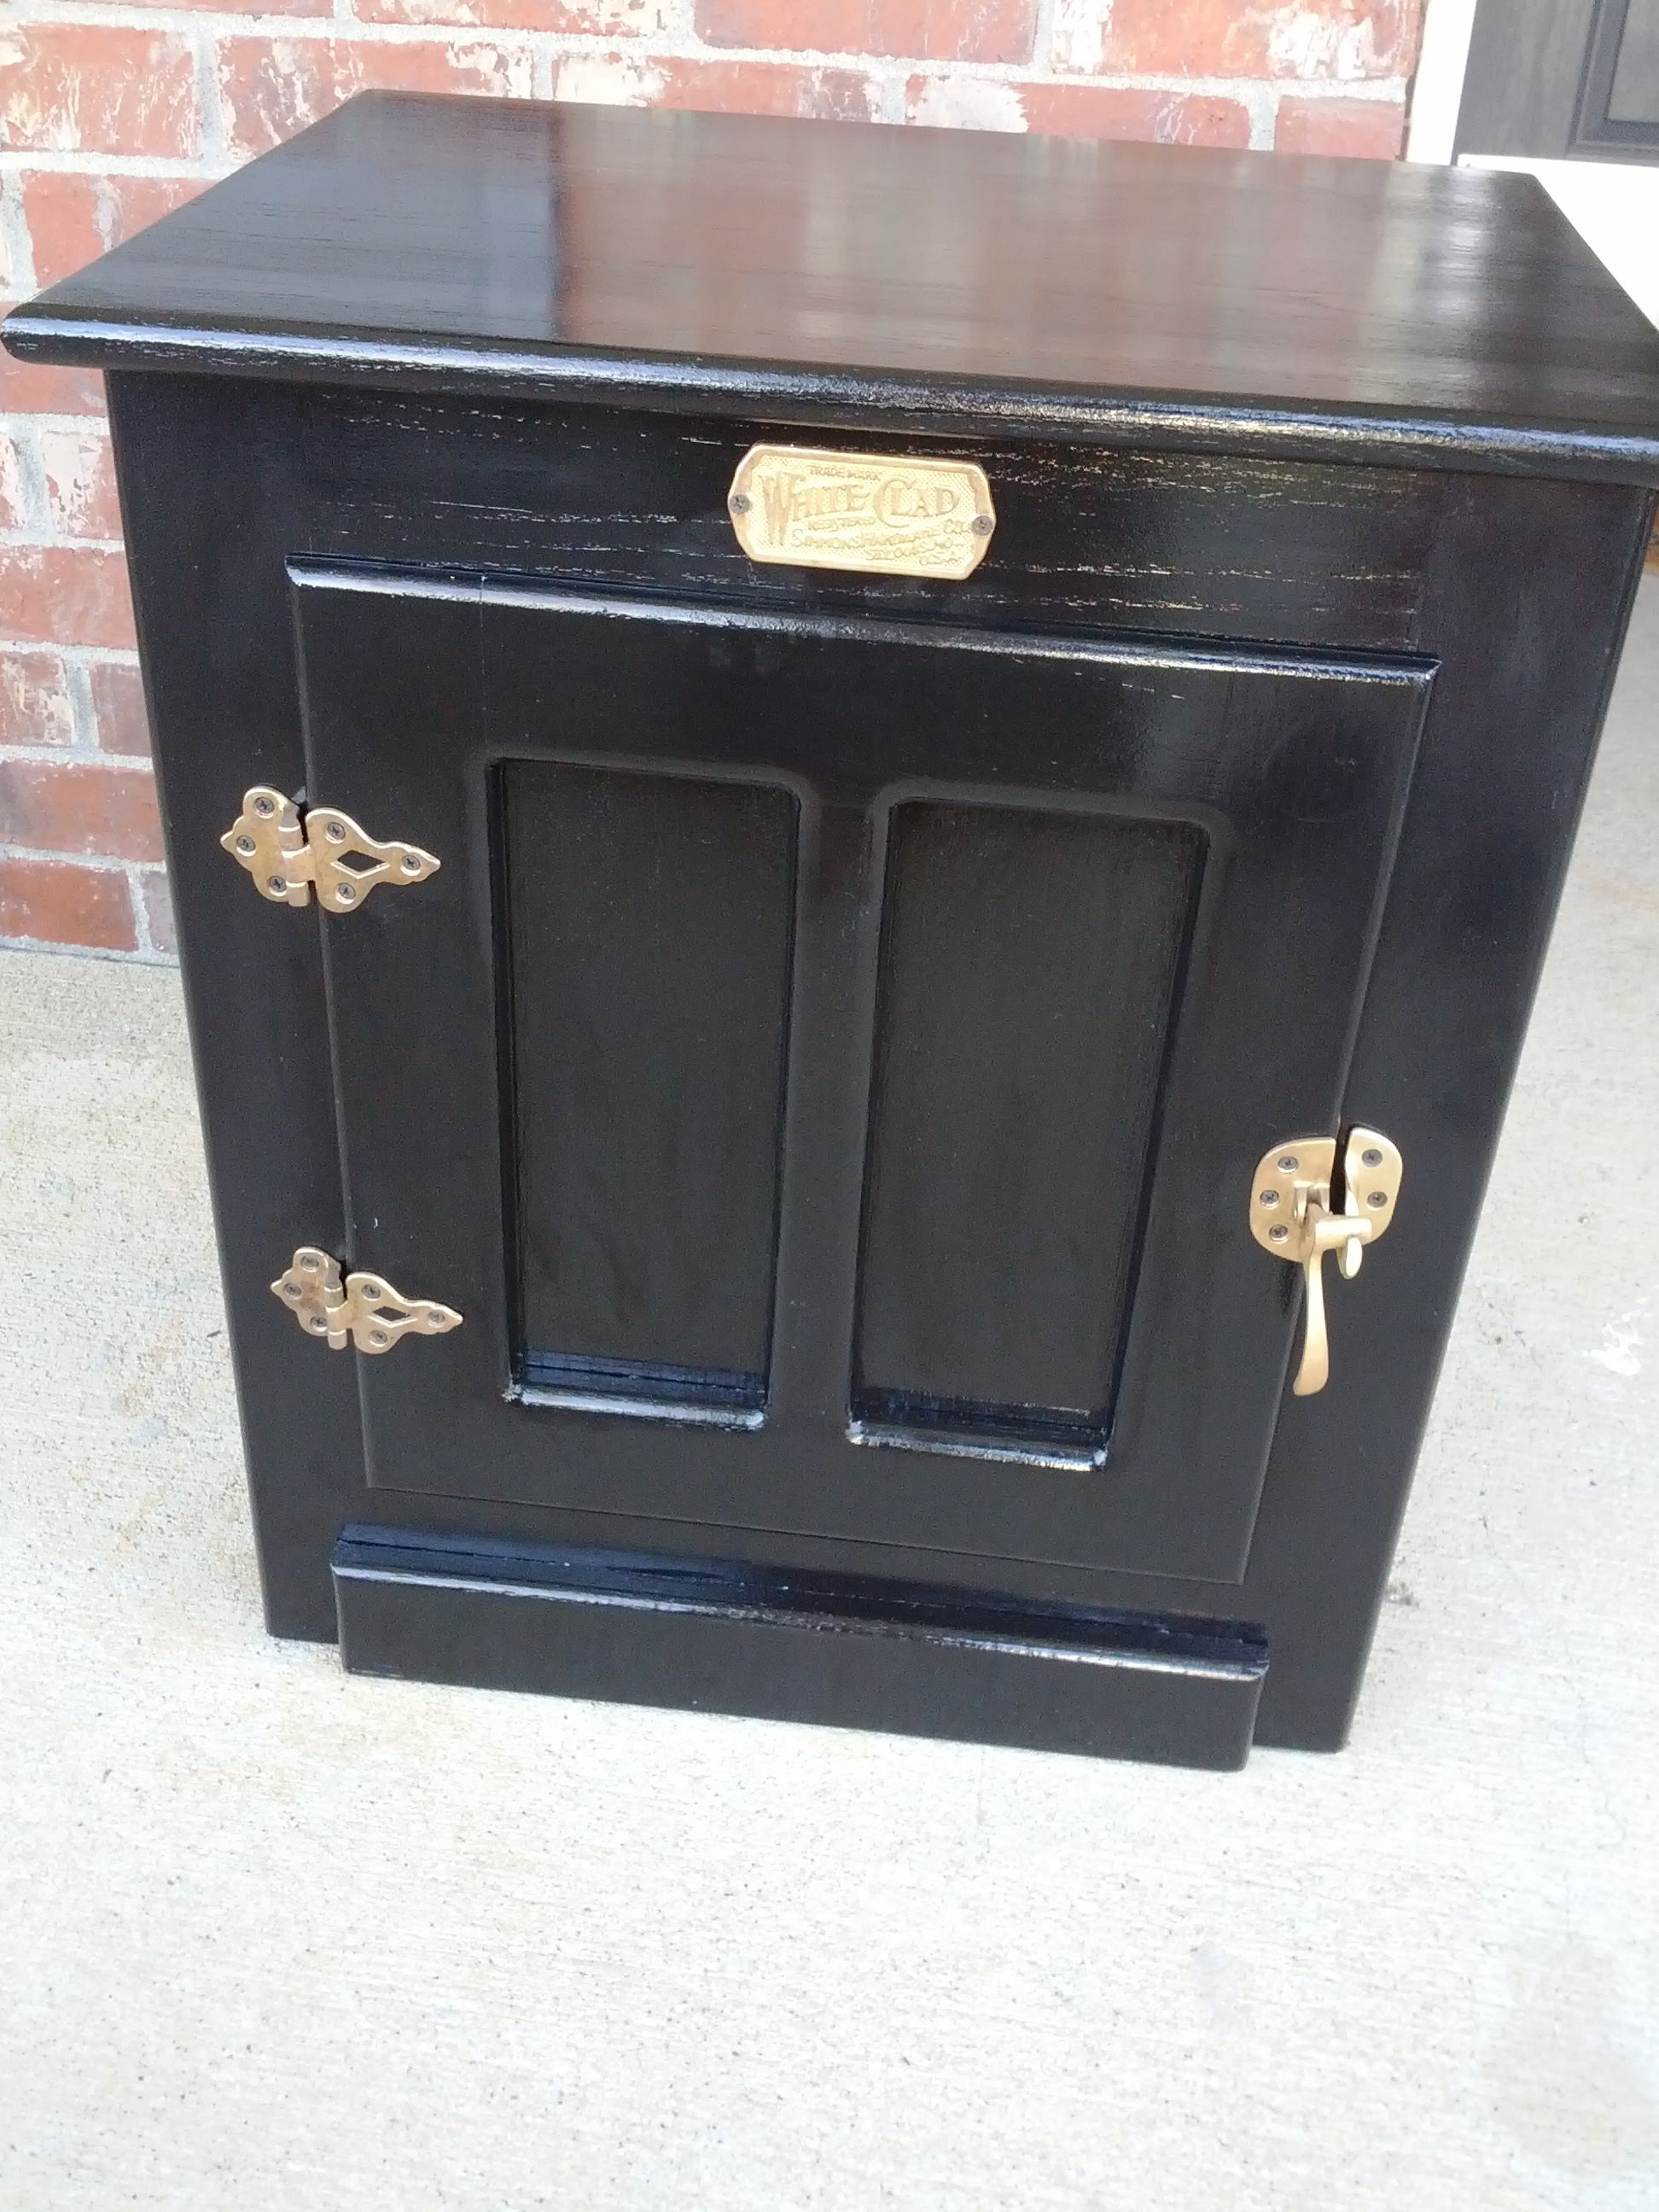 Project 1 Refinishing The Old Ice Chest Ice Chest End Table Makeover Painted Ice Chest